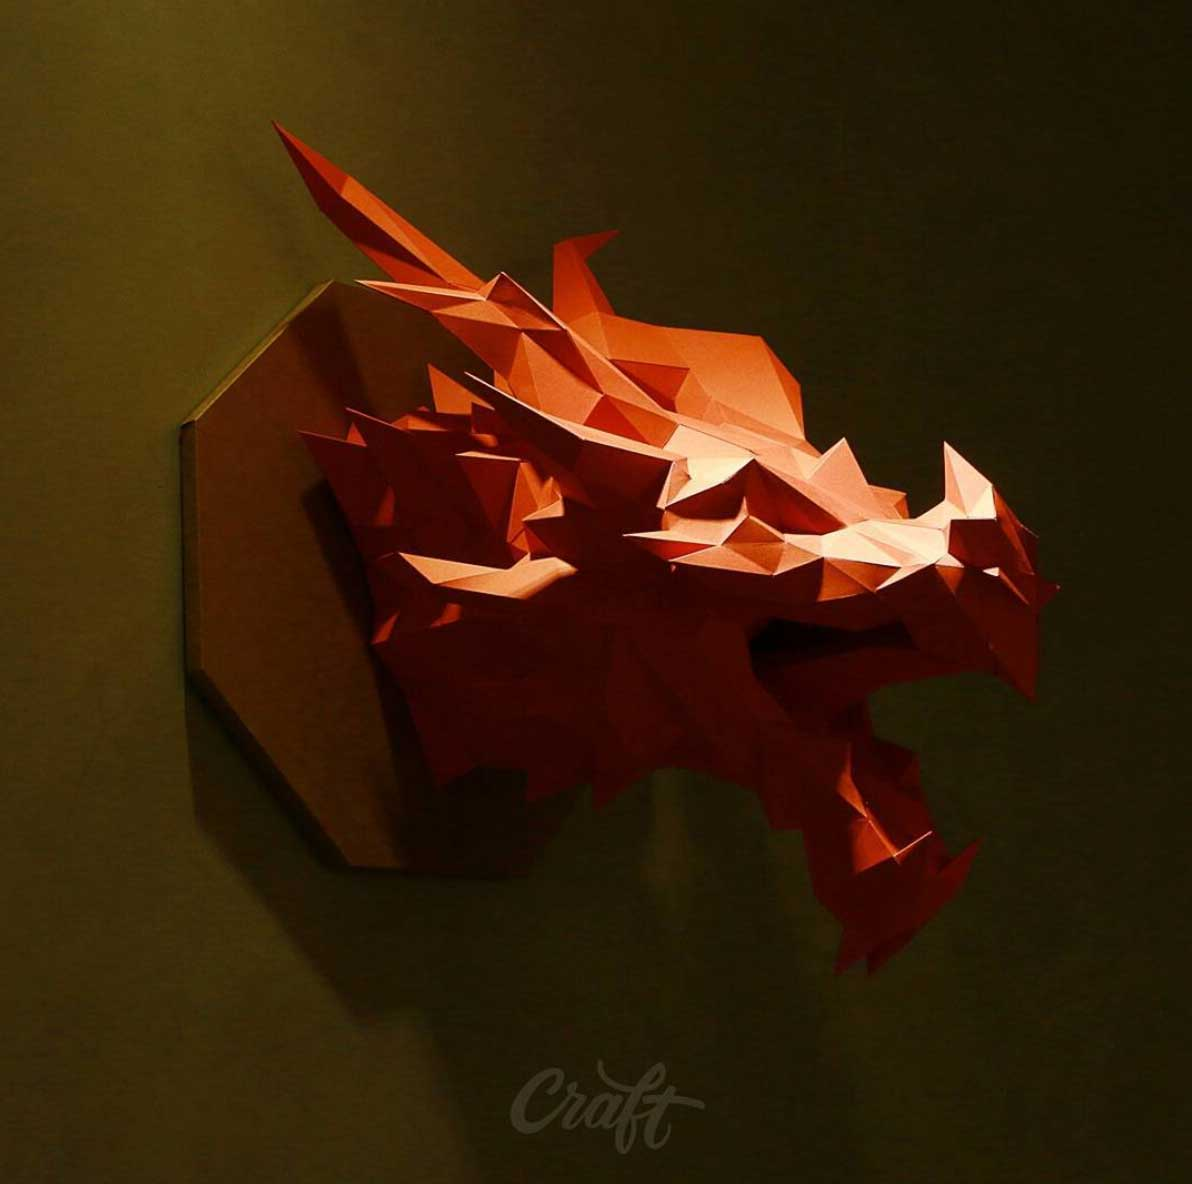 Polygone Papier-Skulpturen von Studio Craft studio-craft-papier-low-poly_04